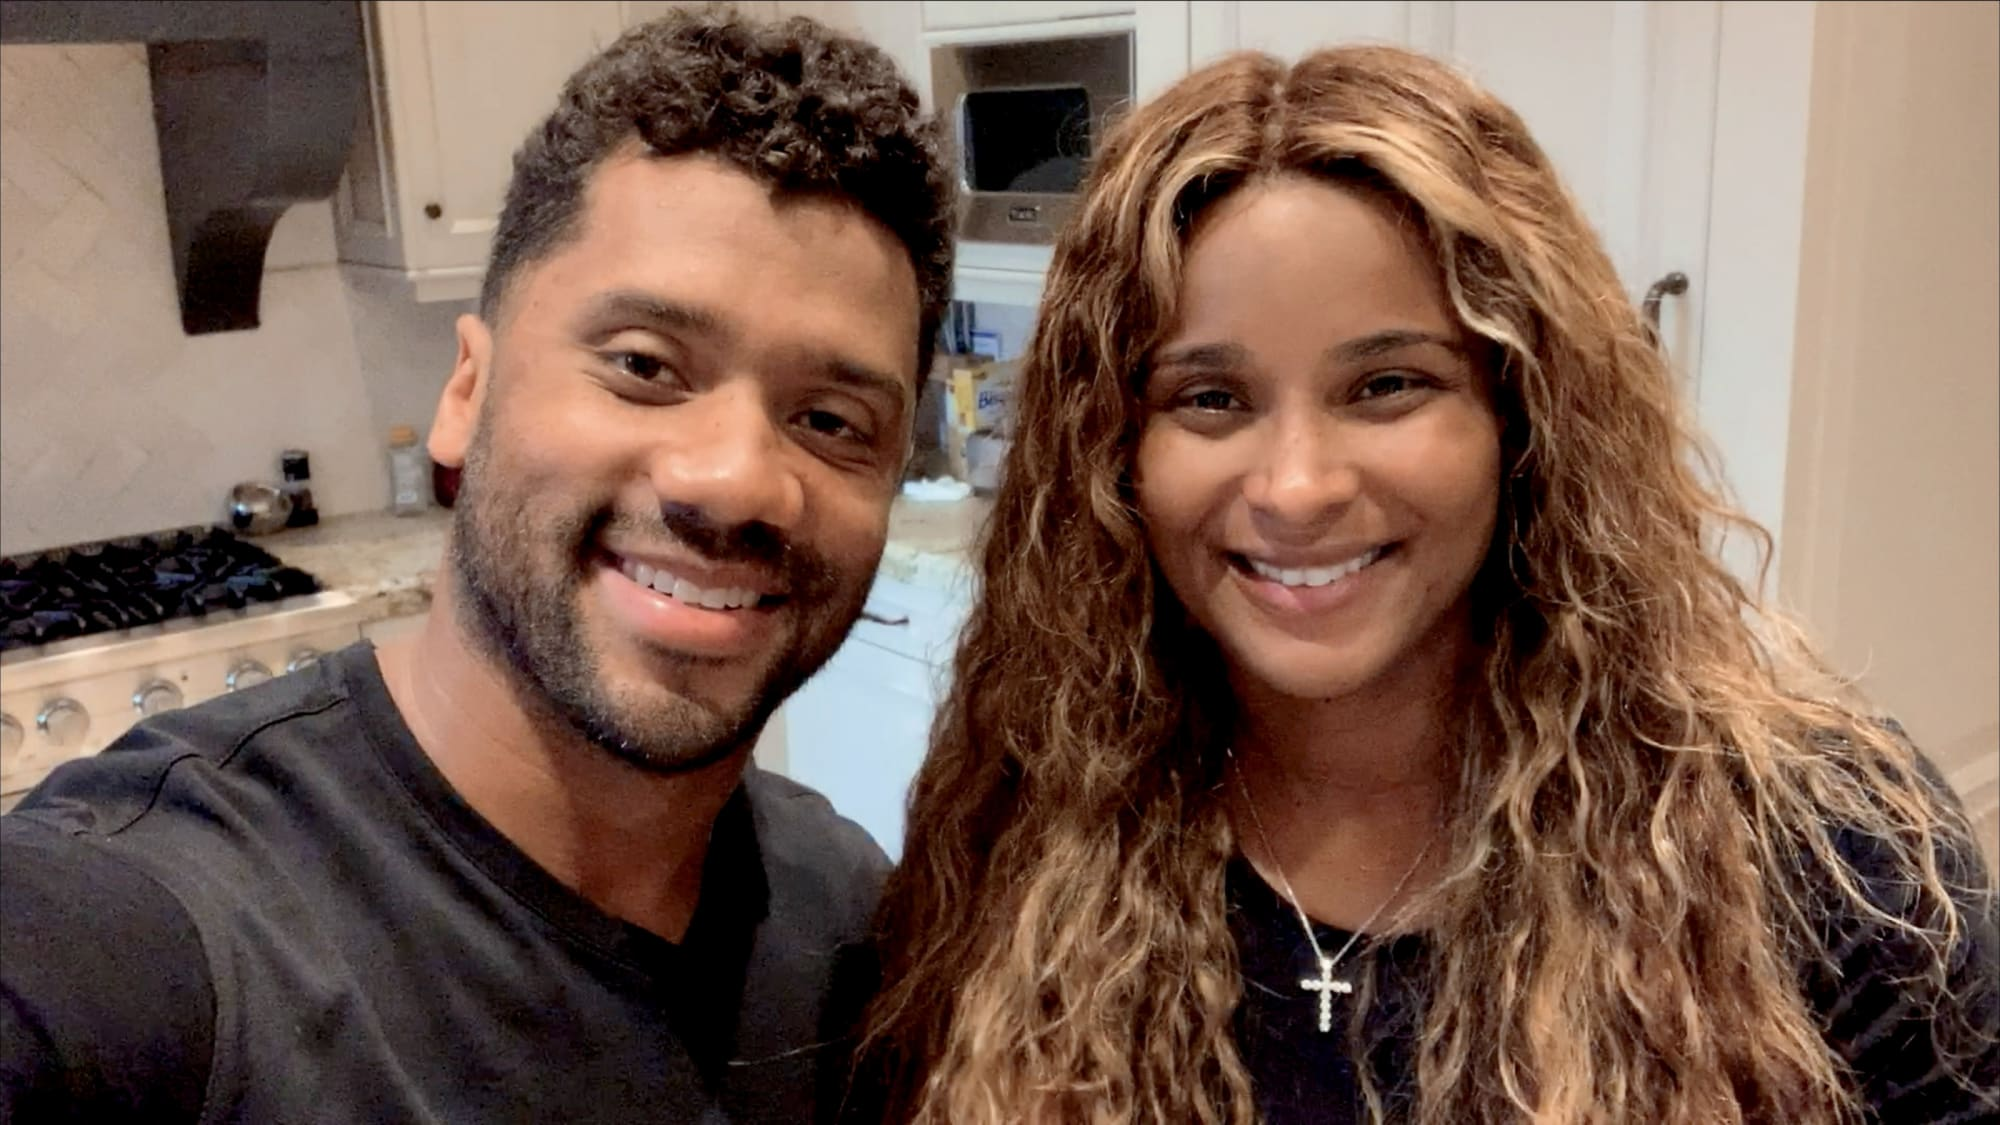 Russell Wilson and Ciara have a new baby rightfully named Win